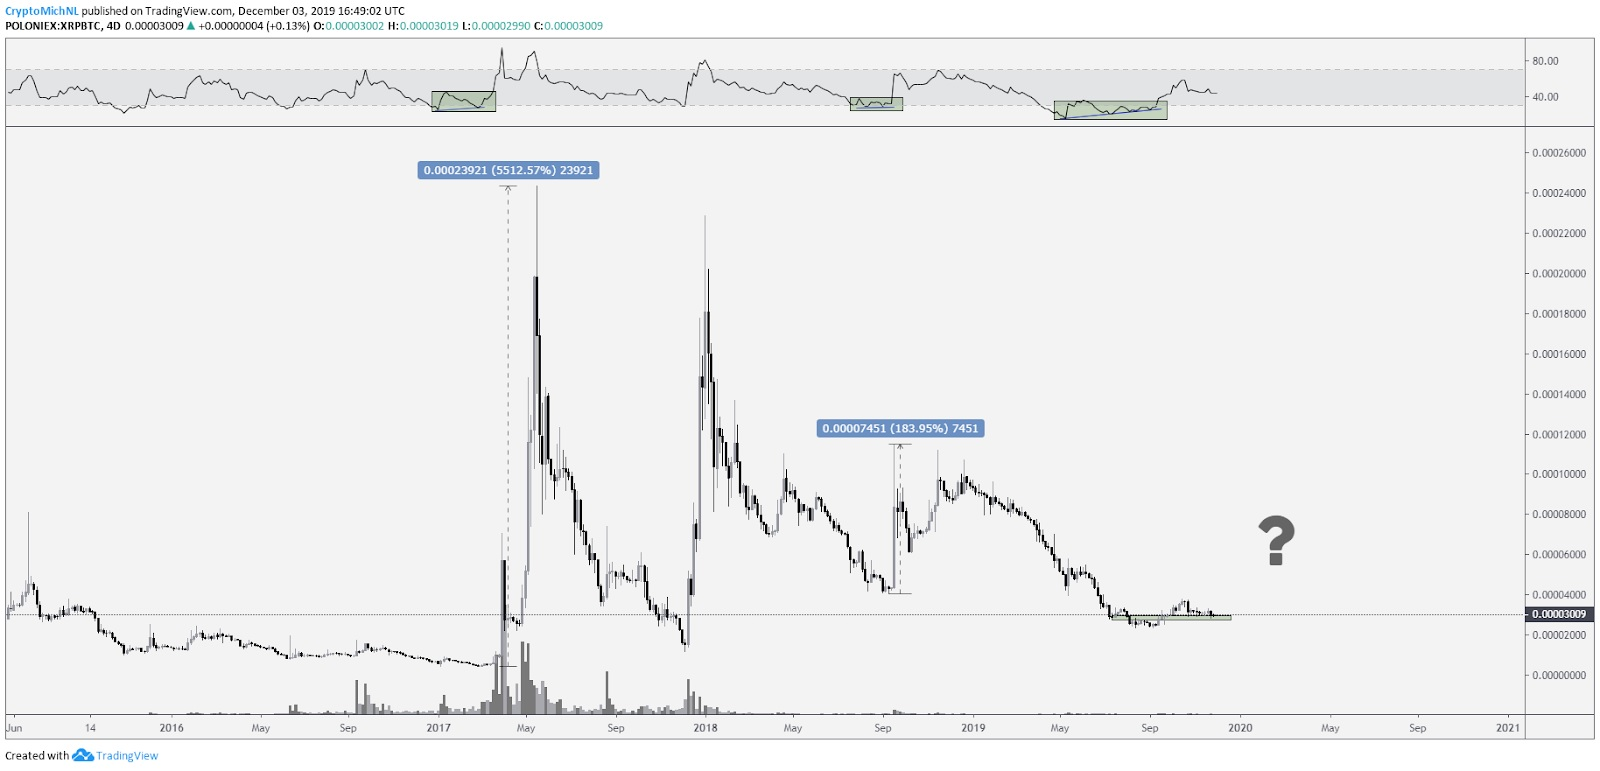 Key Indicator Shows Ripple (XRP) Price Could be on the Verge of a Rally